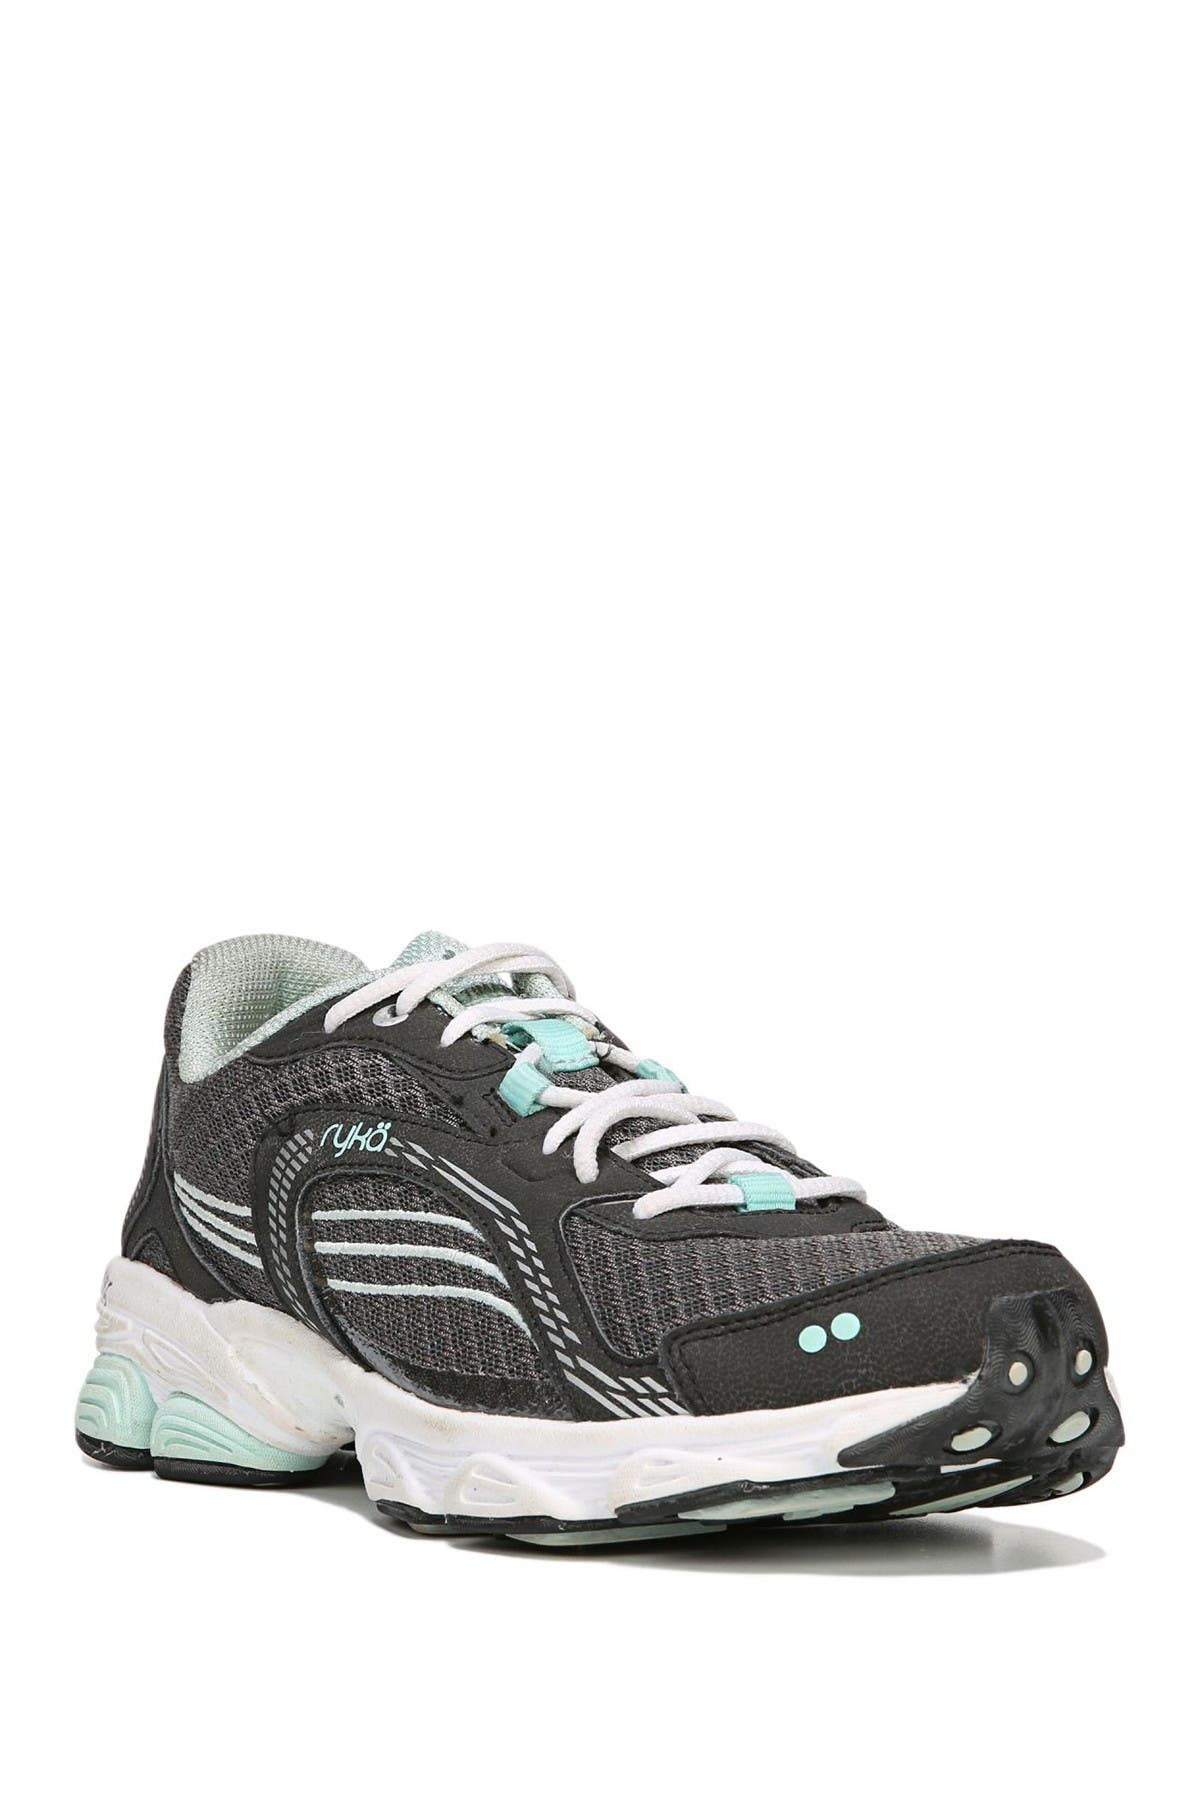 Image of Ryka Ultimate Sneaker - Wide Width Available